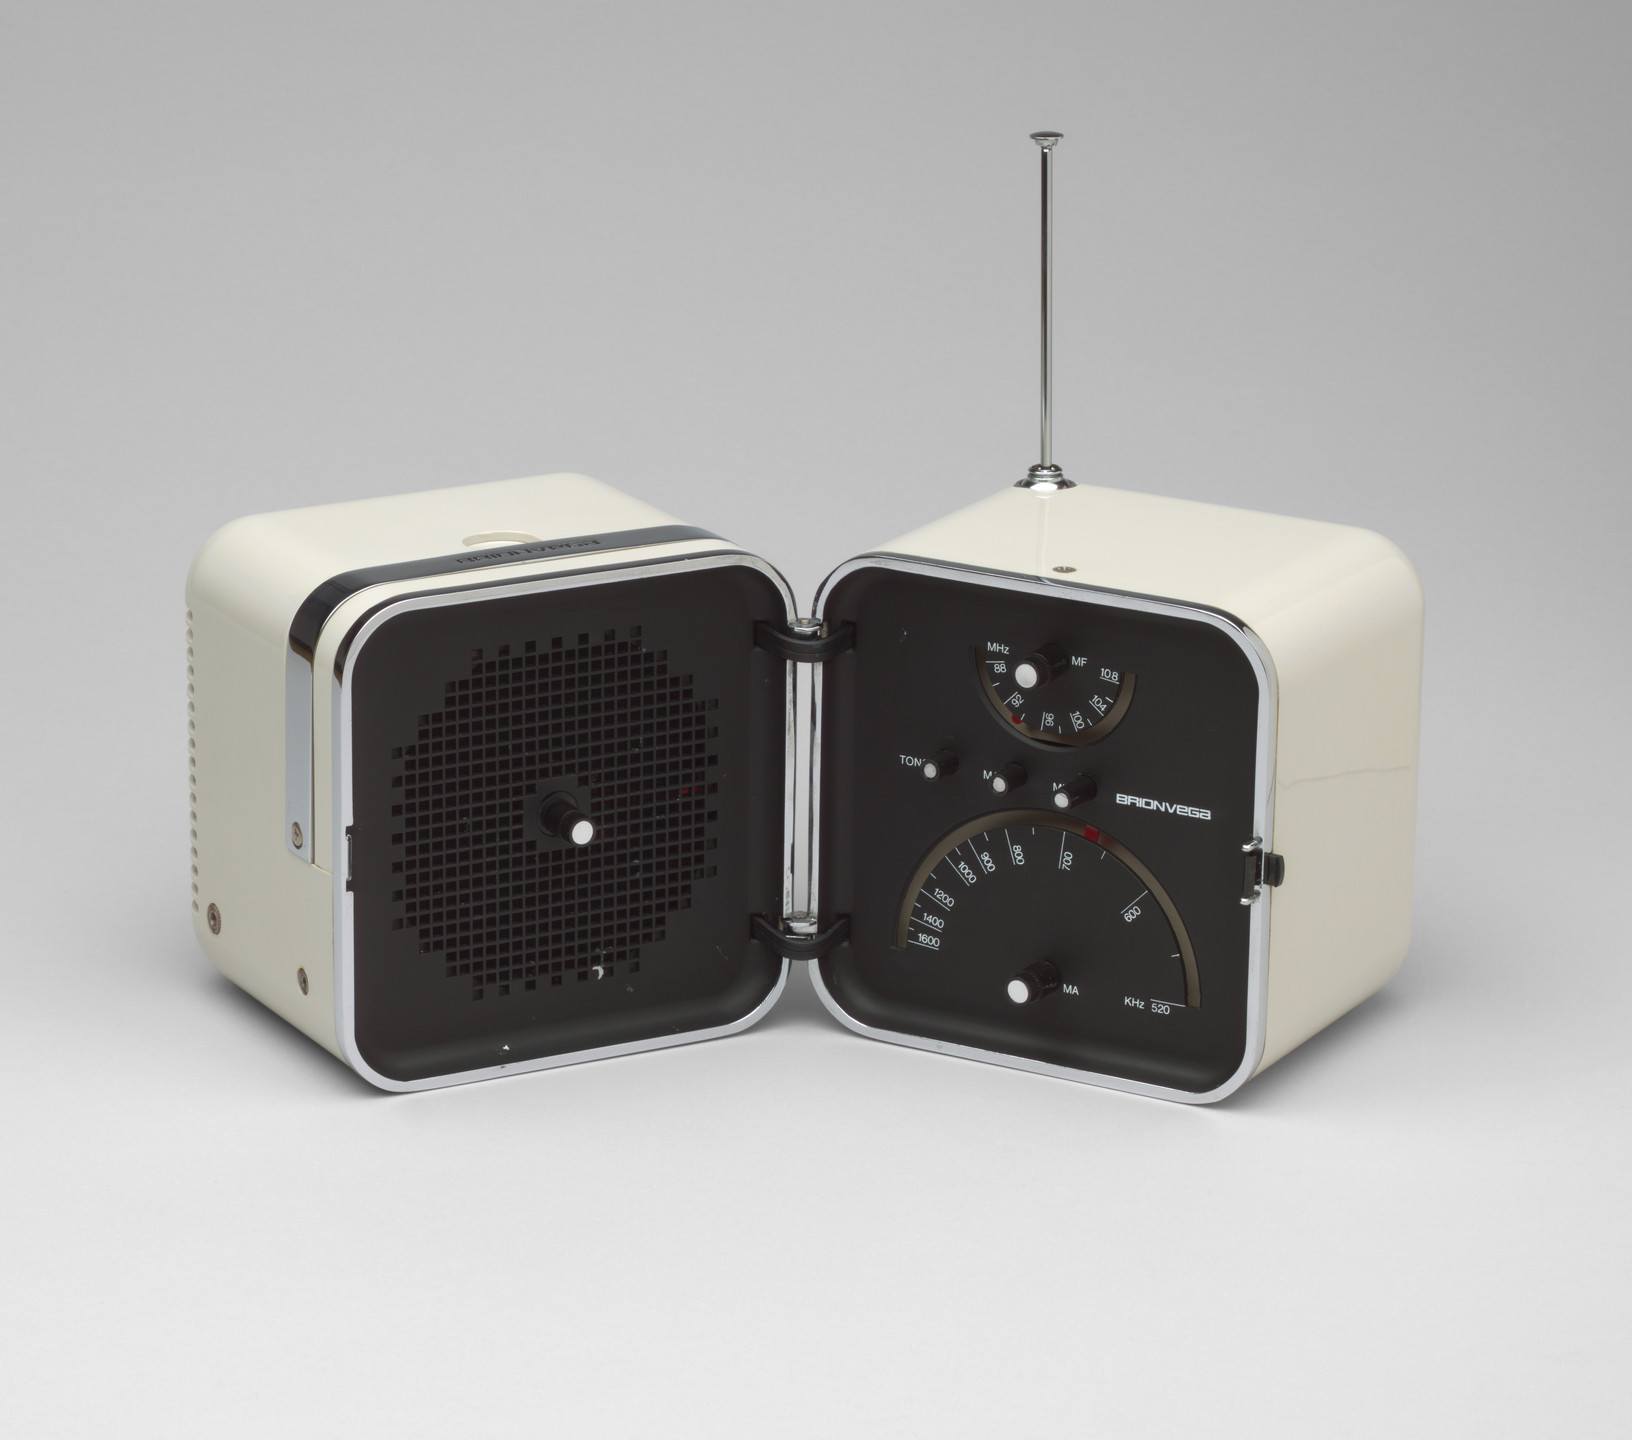 Marco Zanuso, Richard Sapper. Radio (model TS 502). 1963